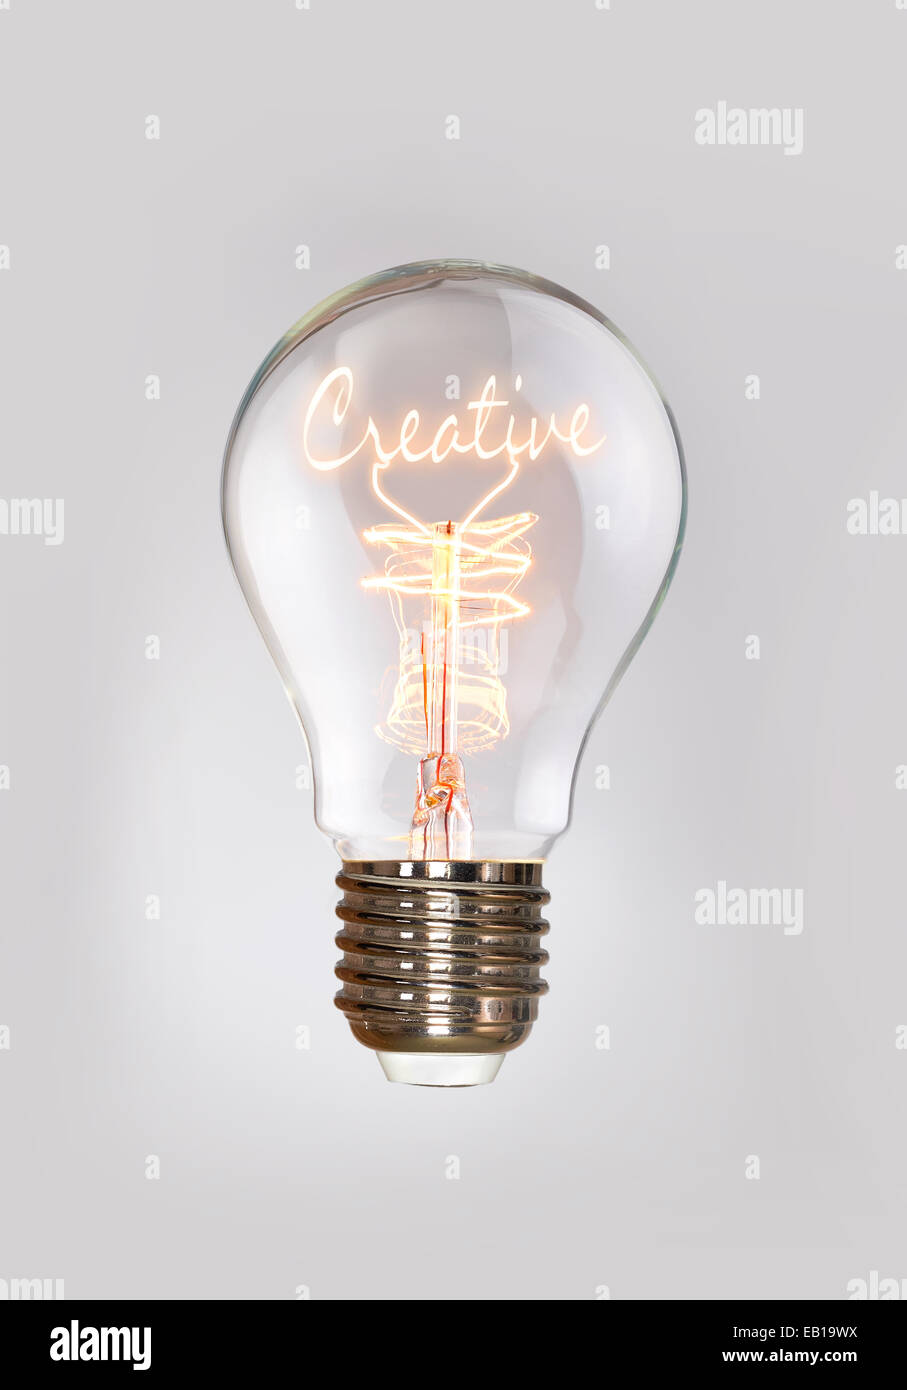 Creative concept in a filament lightbulb. Stock Photo